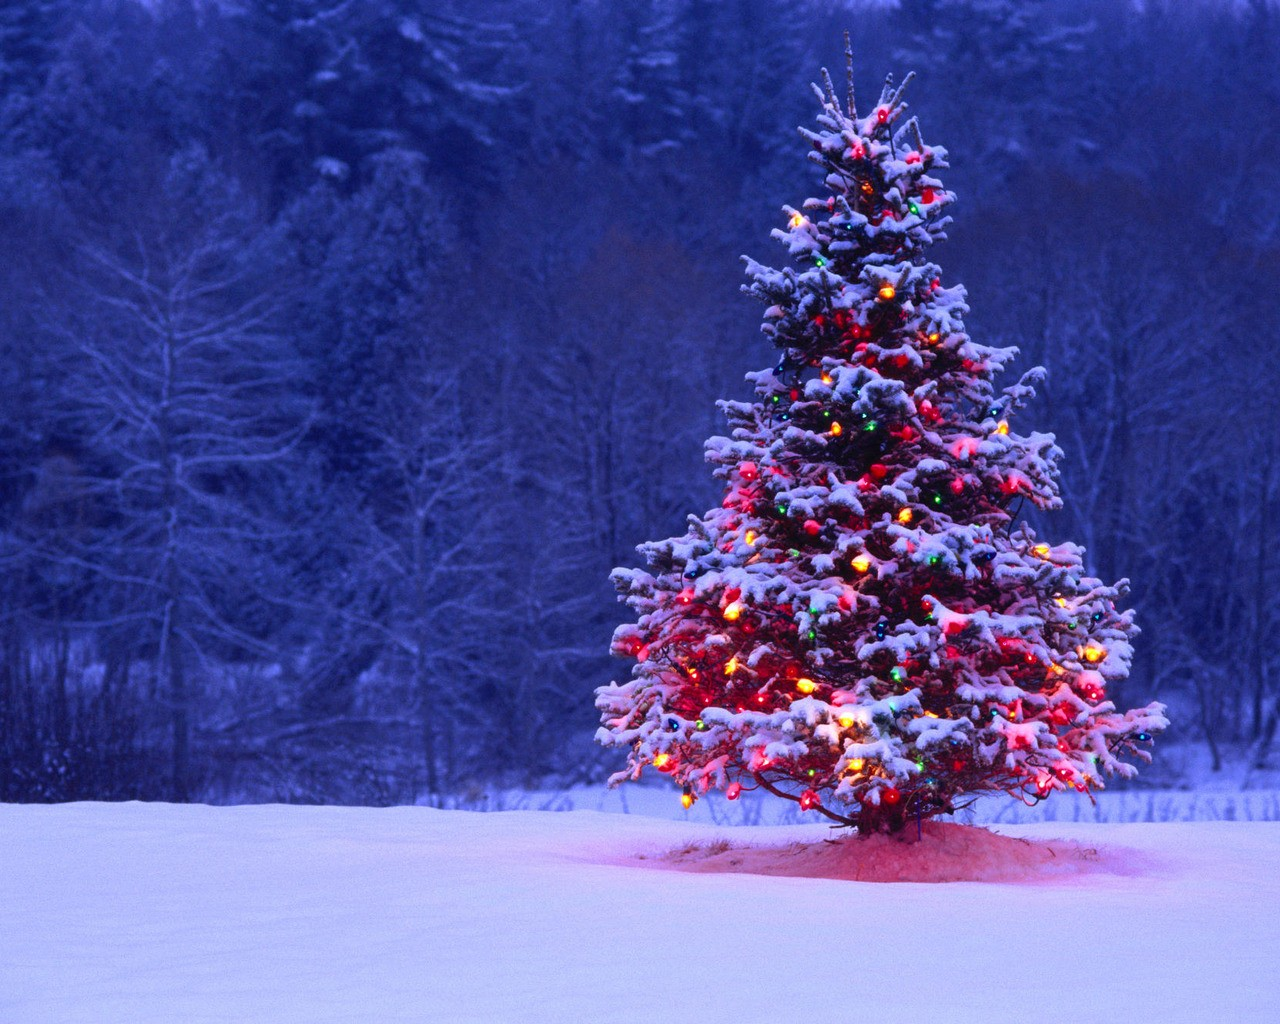 desktop wallpaper winter christmas   wwwwallpapers in hdcom 1280x1024